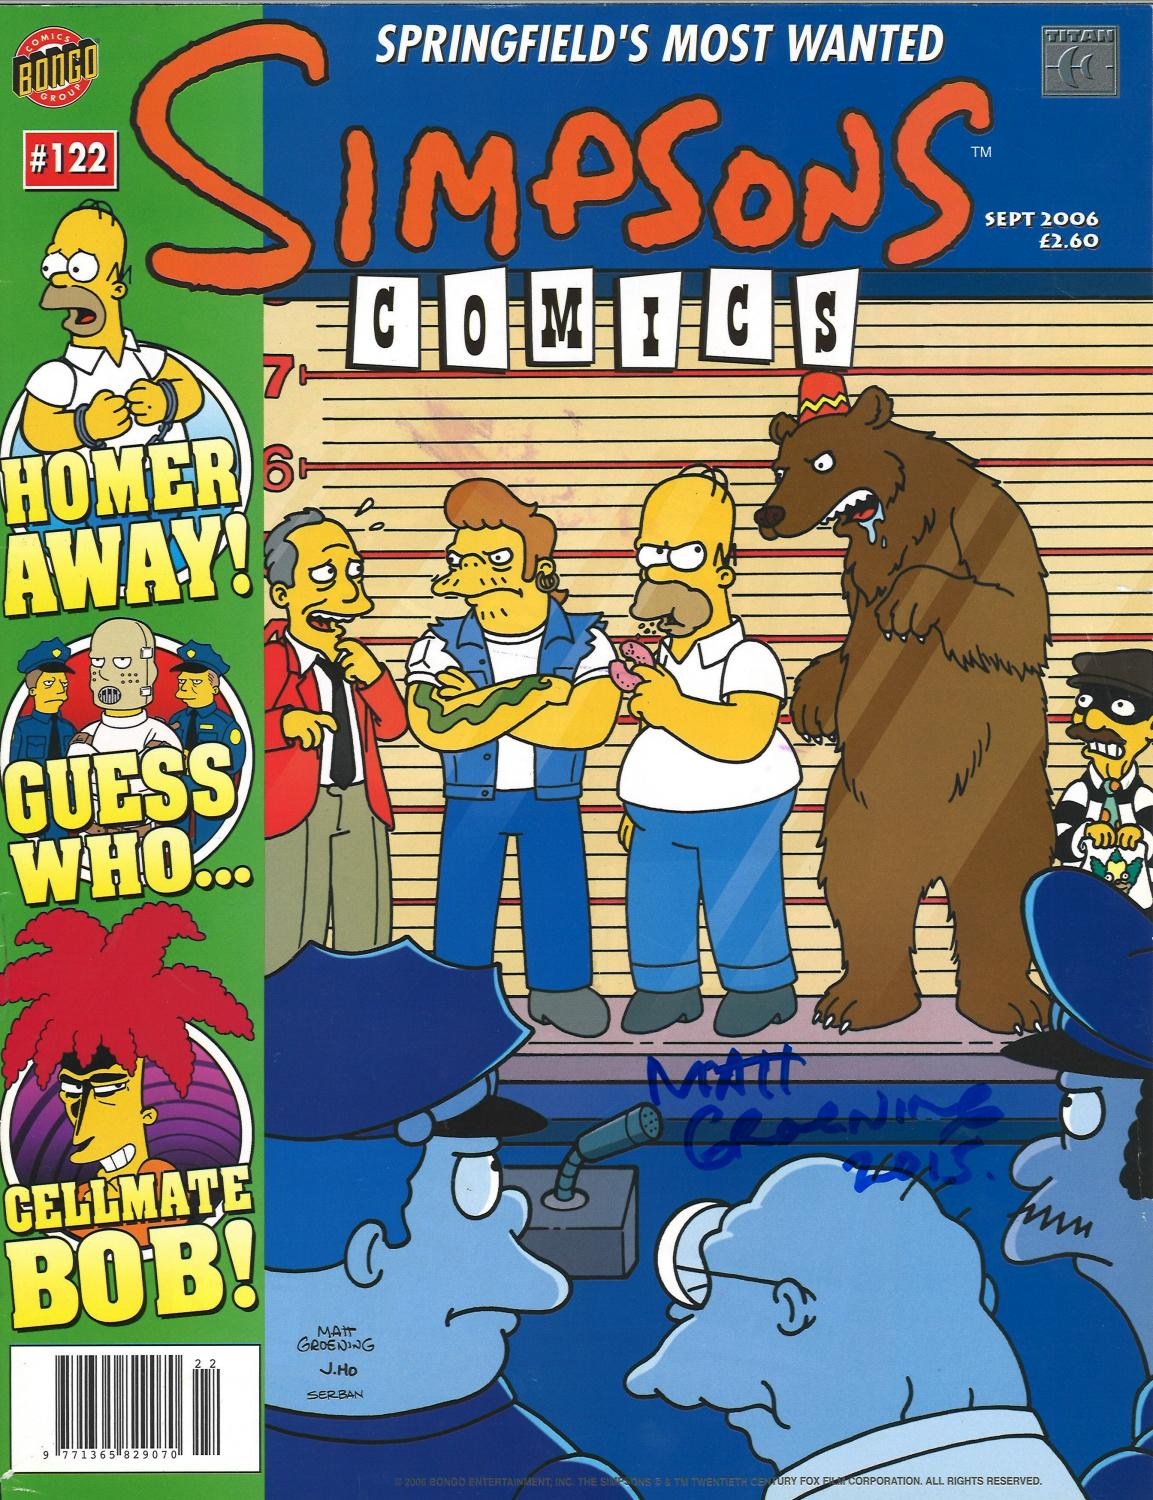 Lot 59 - Matt Groening signed Simpsons comic no 122. Signed on front cover. Good Condition. All signed pieces